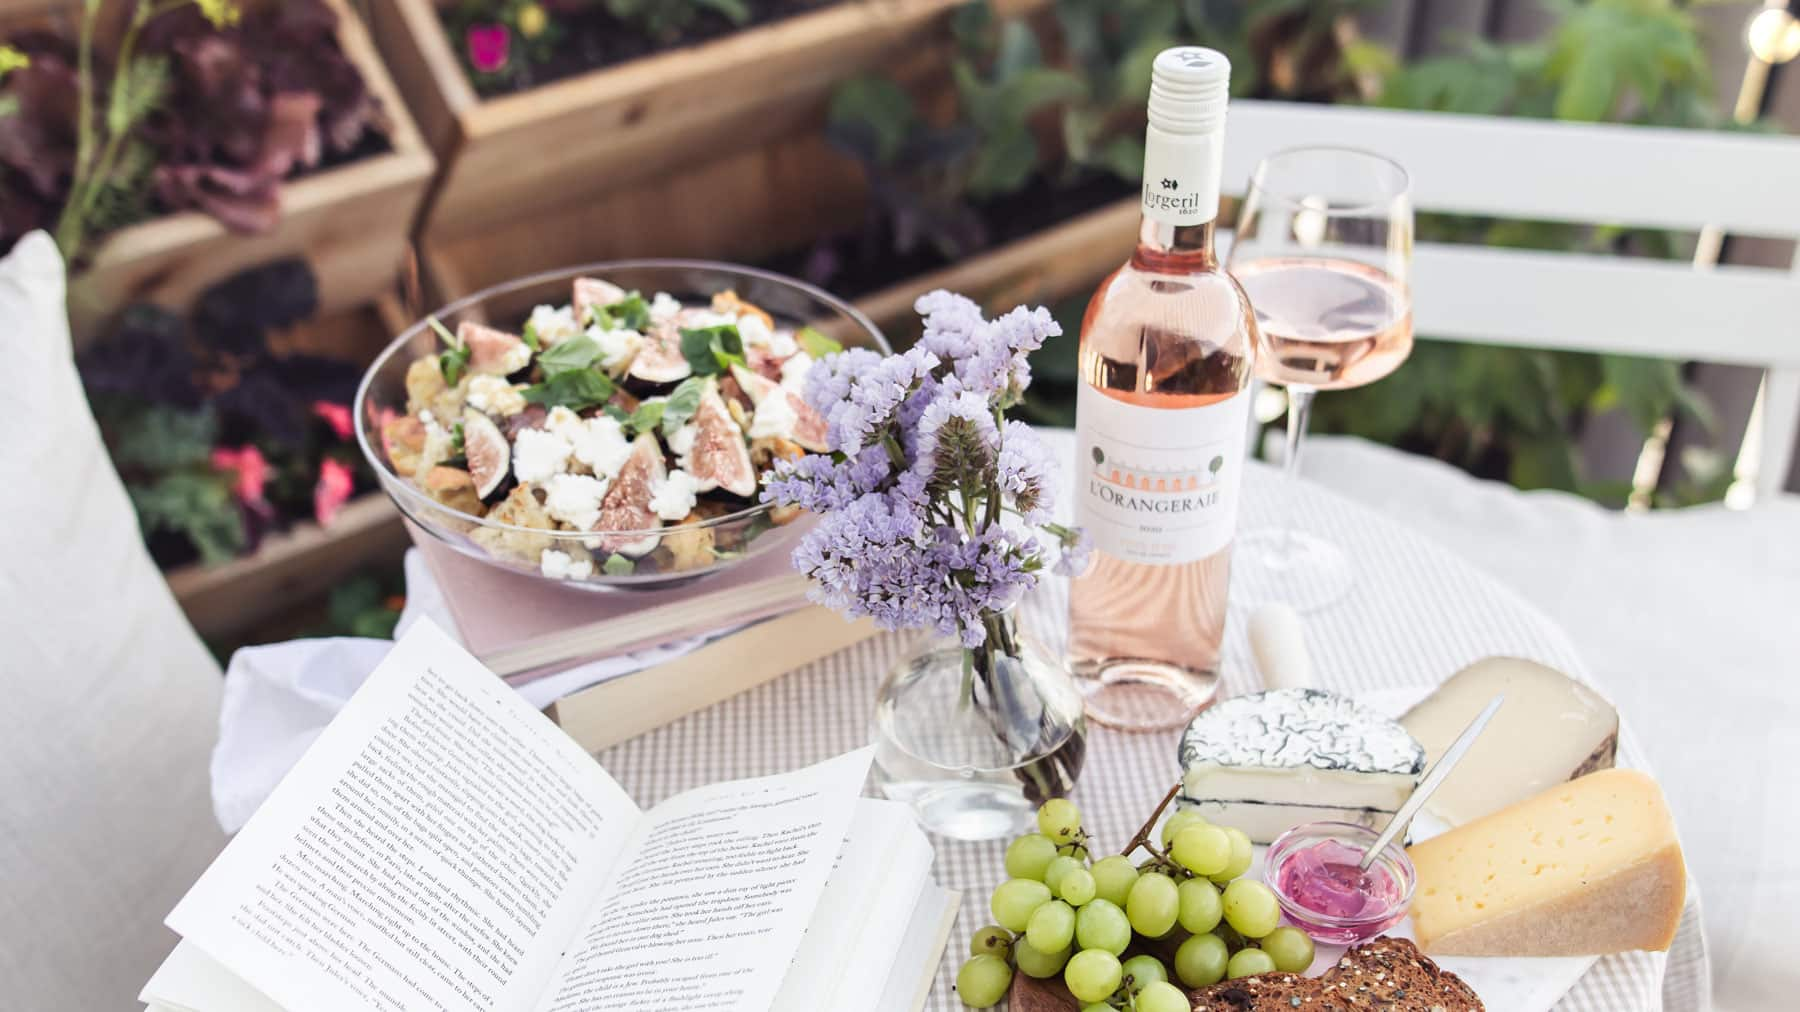 Bistro table with book, salad, cheeseboard, flowers and rose wine.